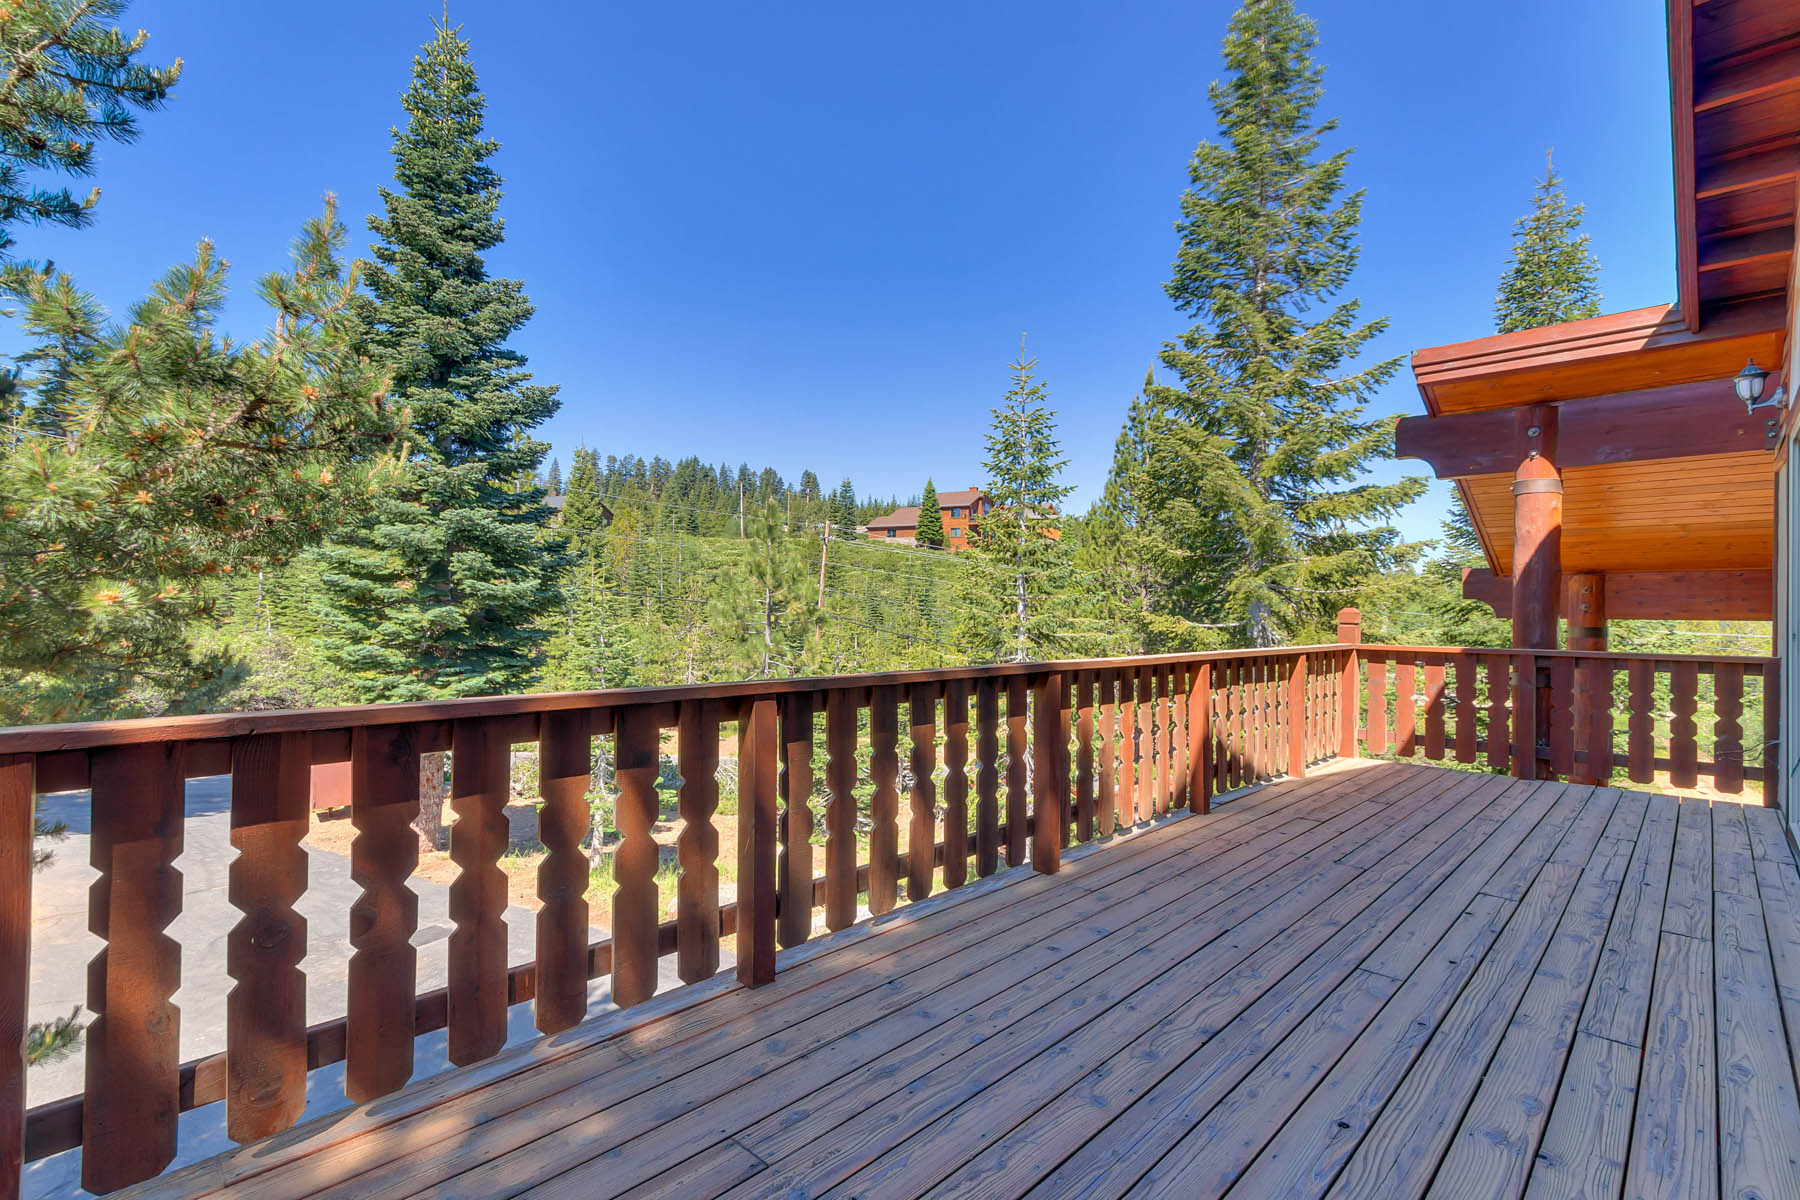 Additional photo for property listing at 15071 Skislope Way, Truckee, CA 15071  Ski Slope Way Truckee, California 96161 United States